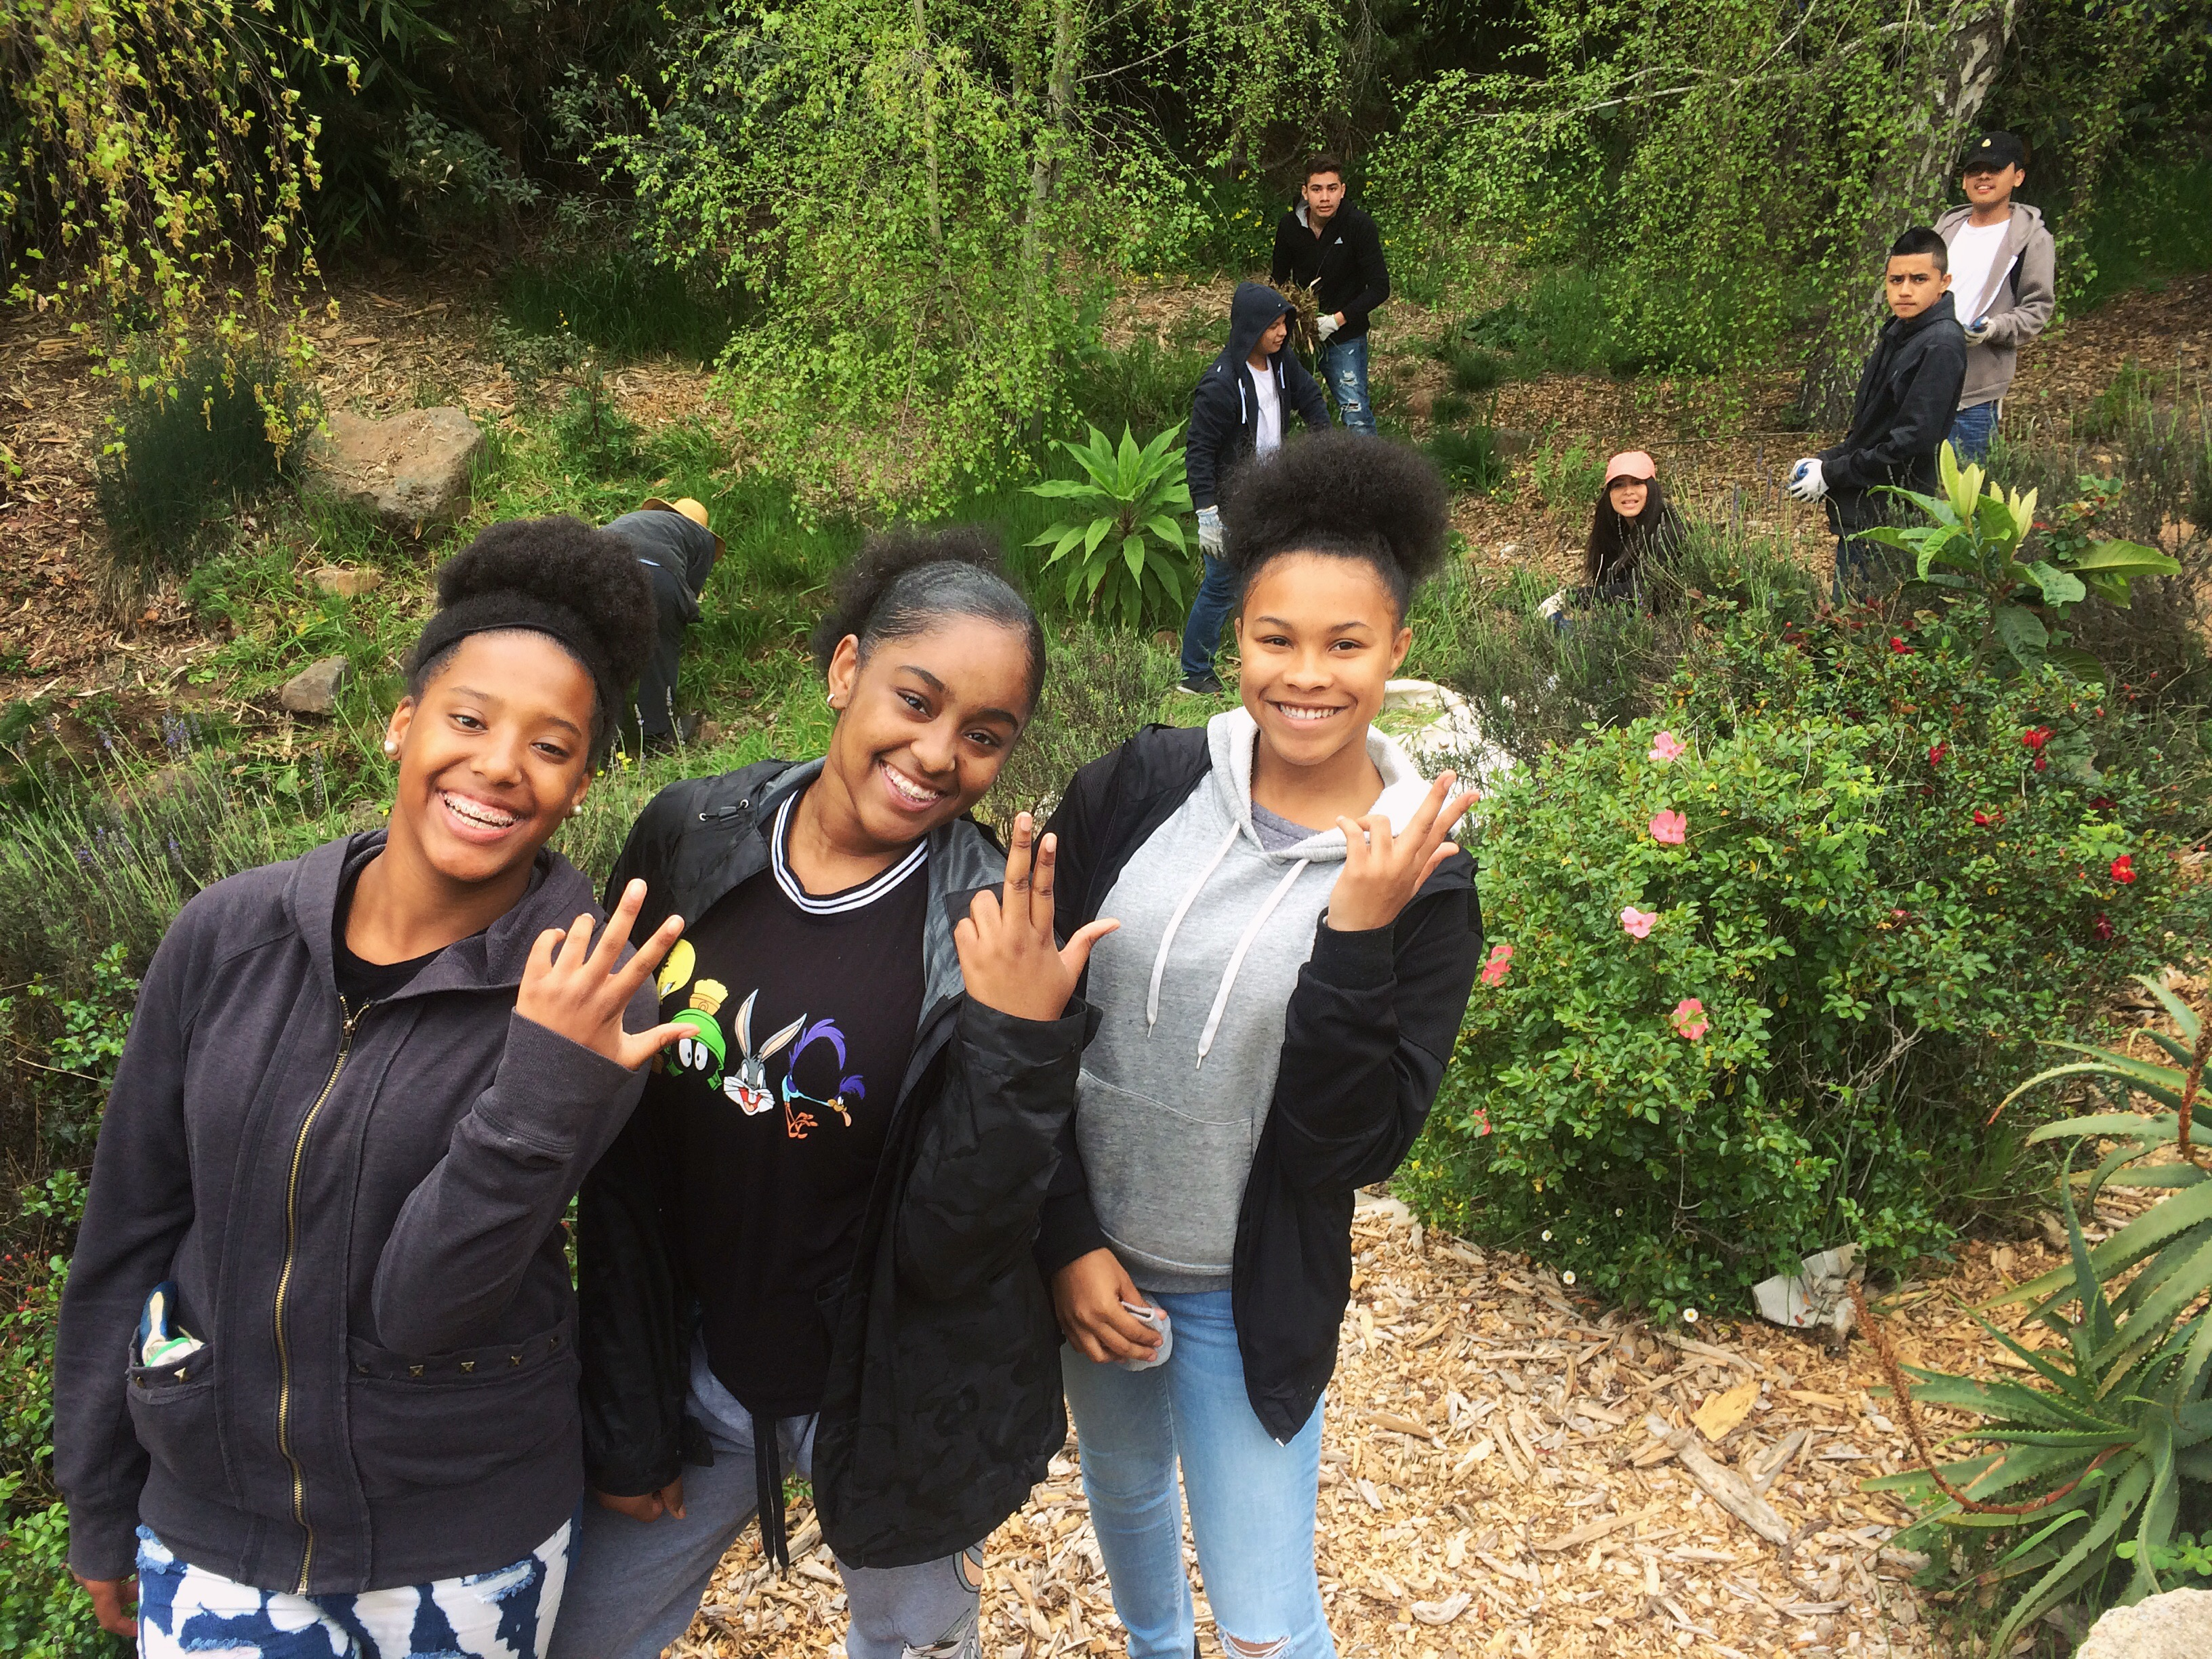 Vis Valley Greenway_LHS students Kionna, Erica, Heavynlei